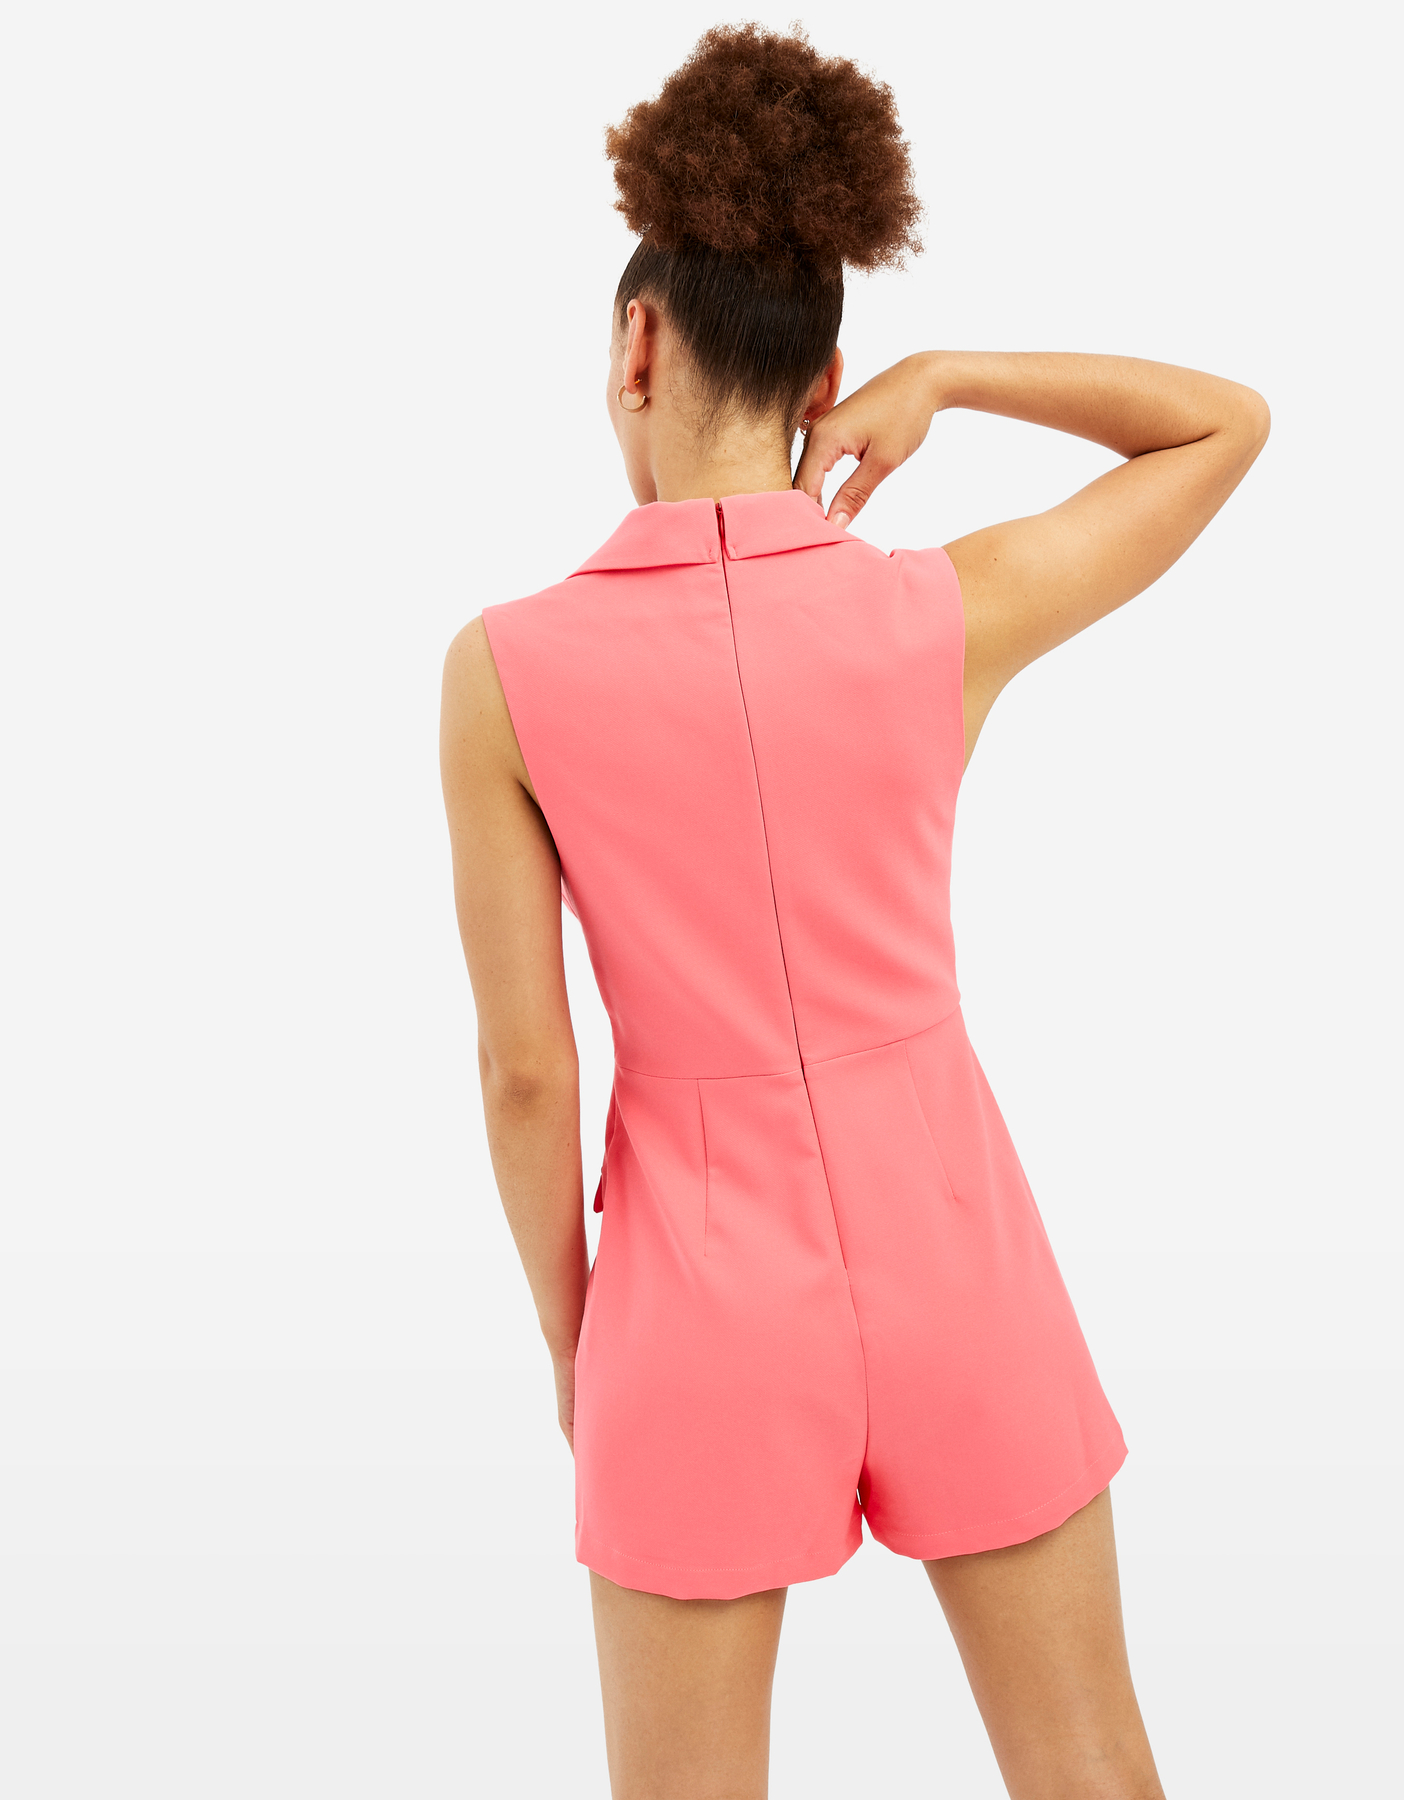 Neonpinker Playsuit